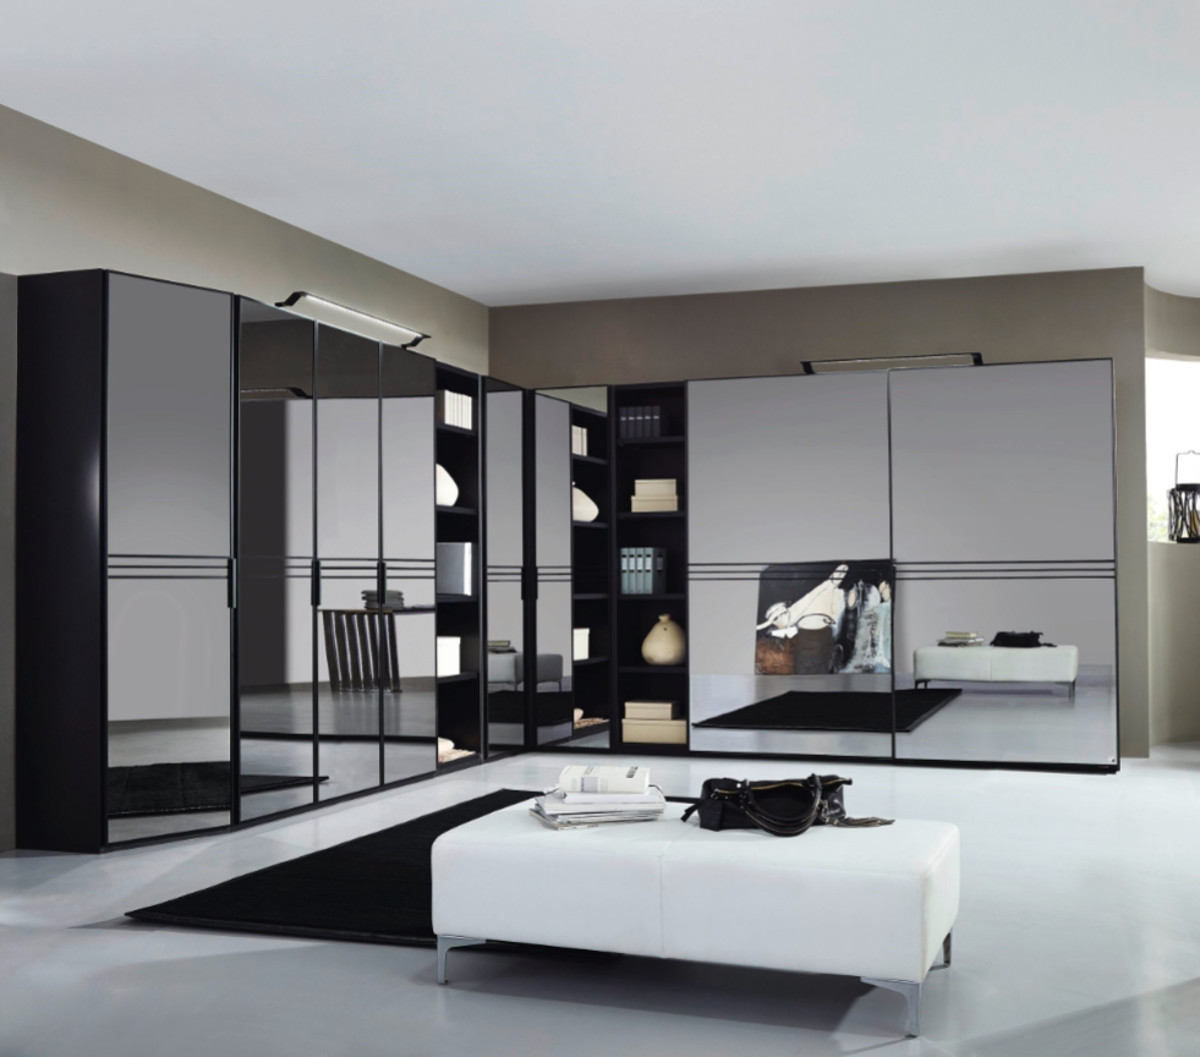 Cost Of Fitted Wardrobes: Semi-Fitted Wardrobes In Liverpool